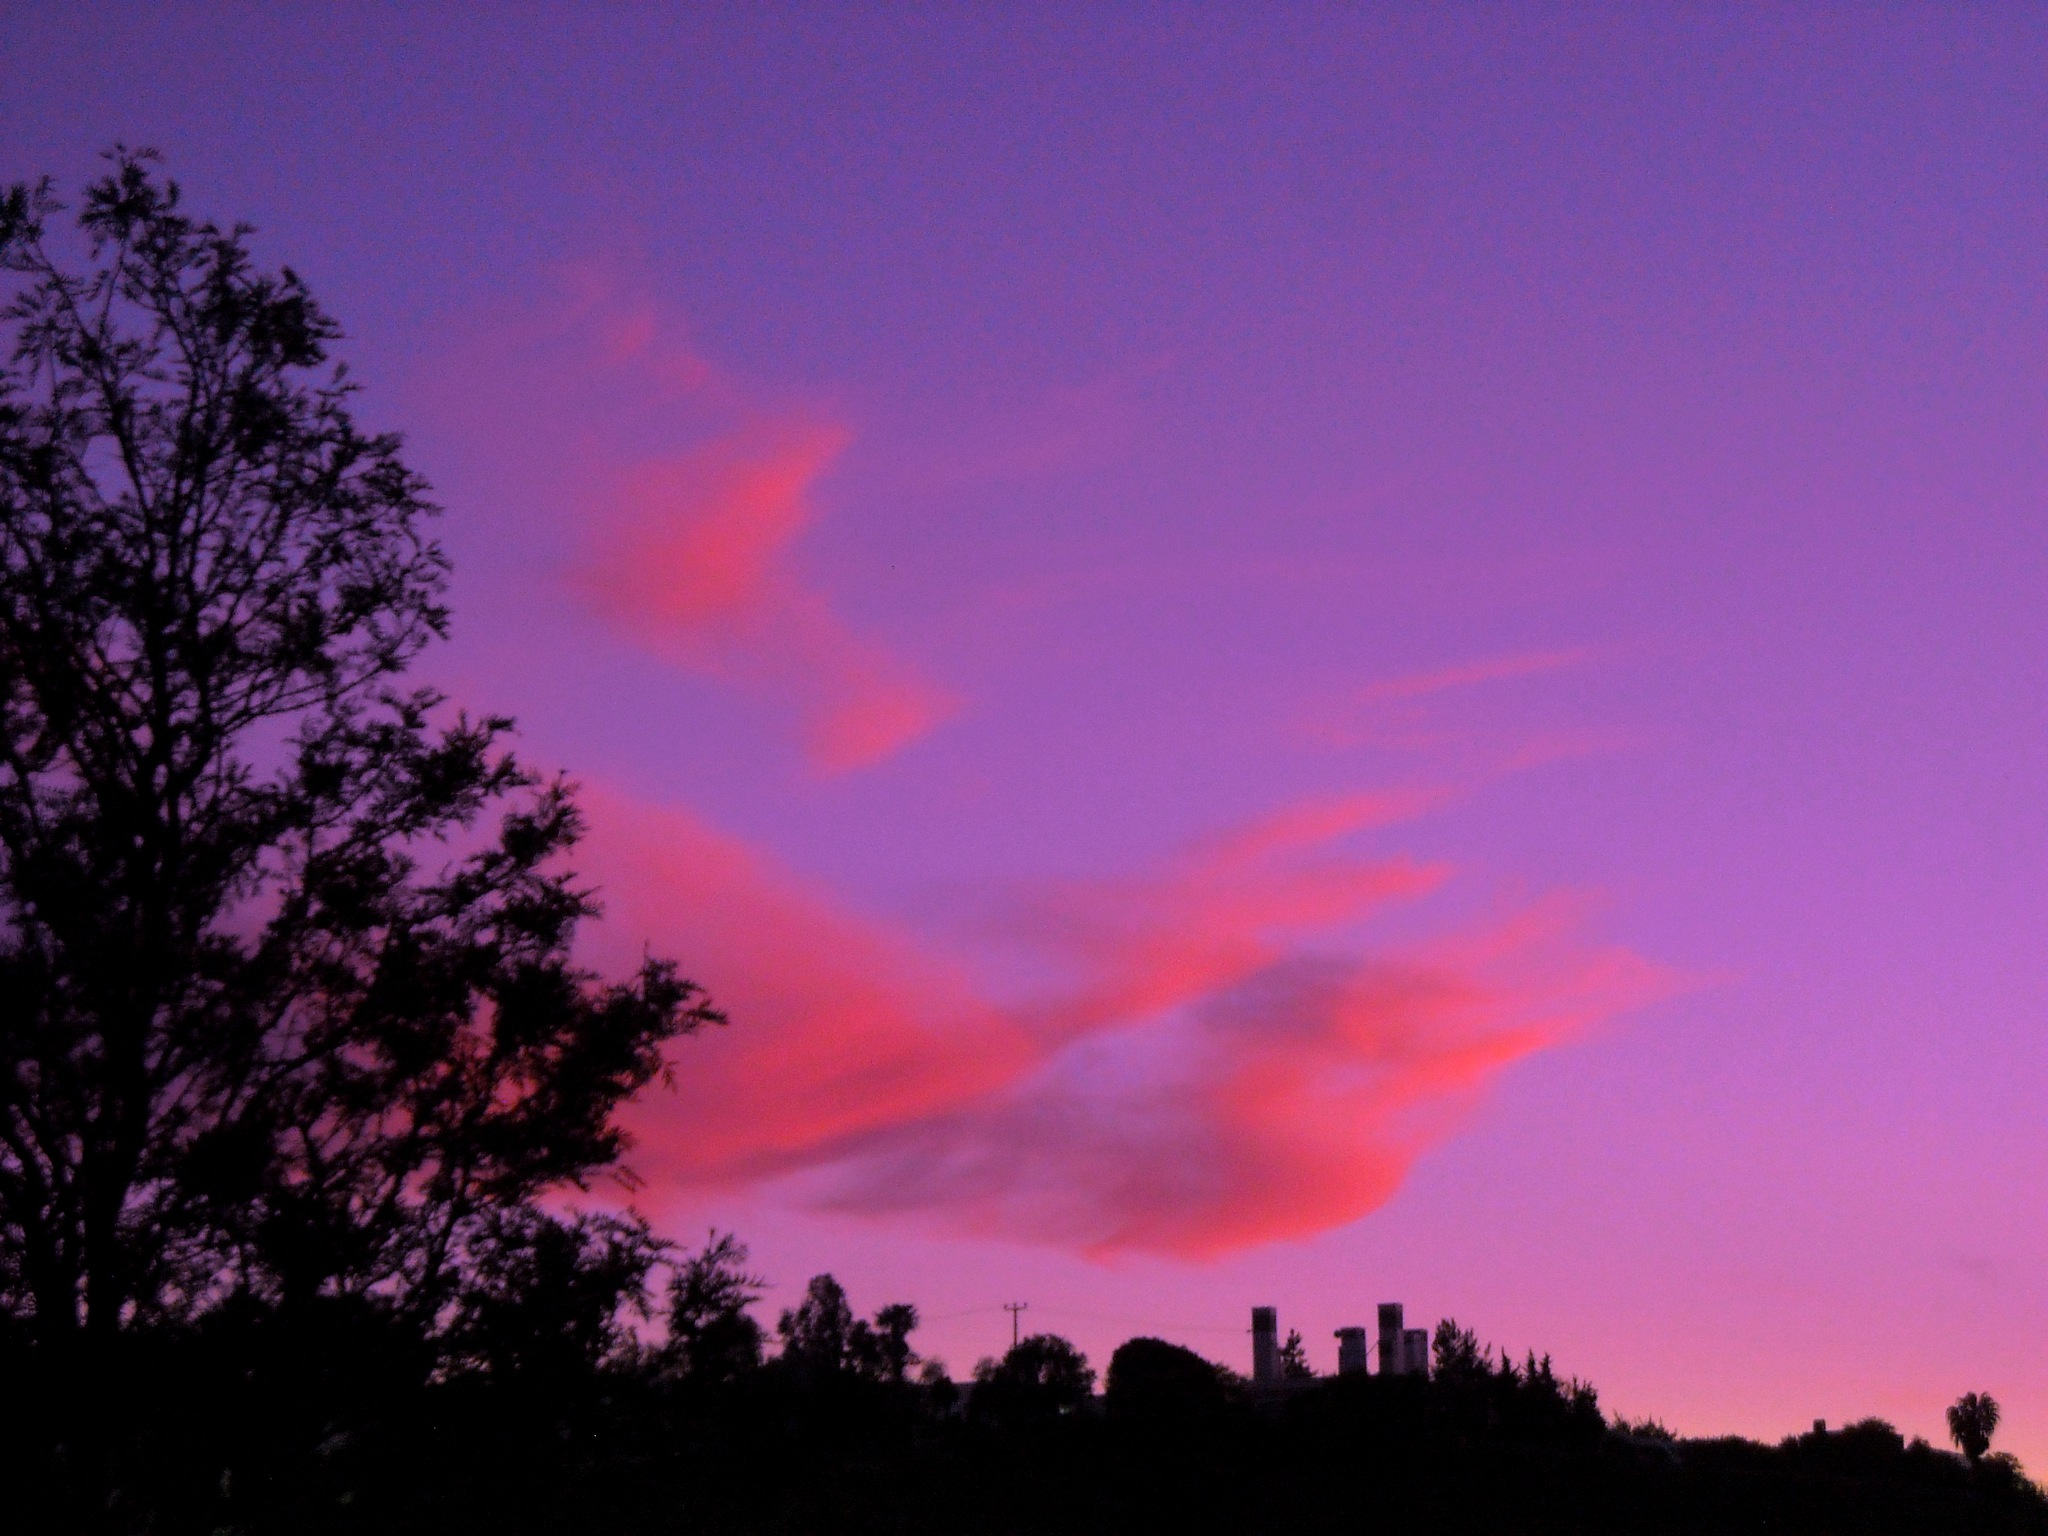 BEAUTIFUL CLOUDS JUST AFTER SUNSET, BITEZ by Akin Saner